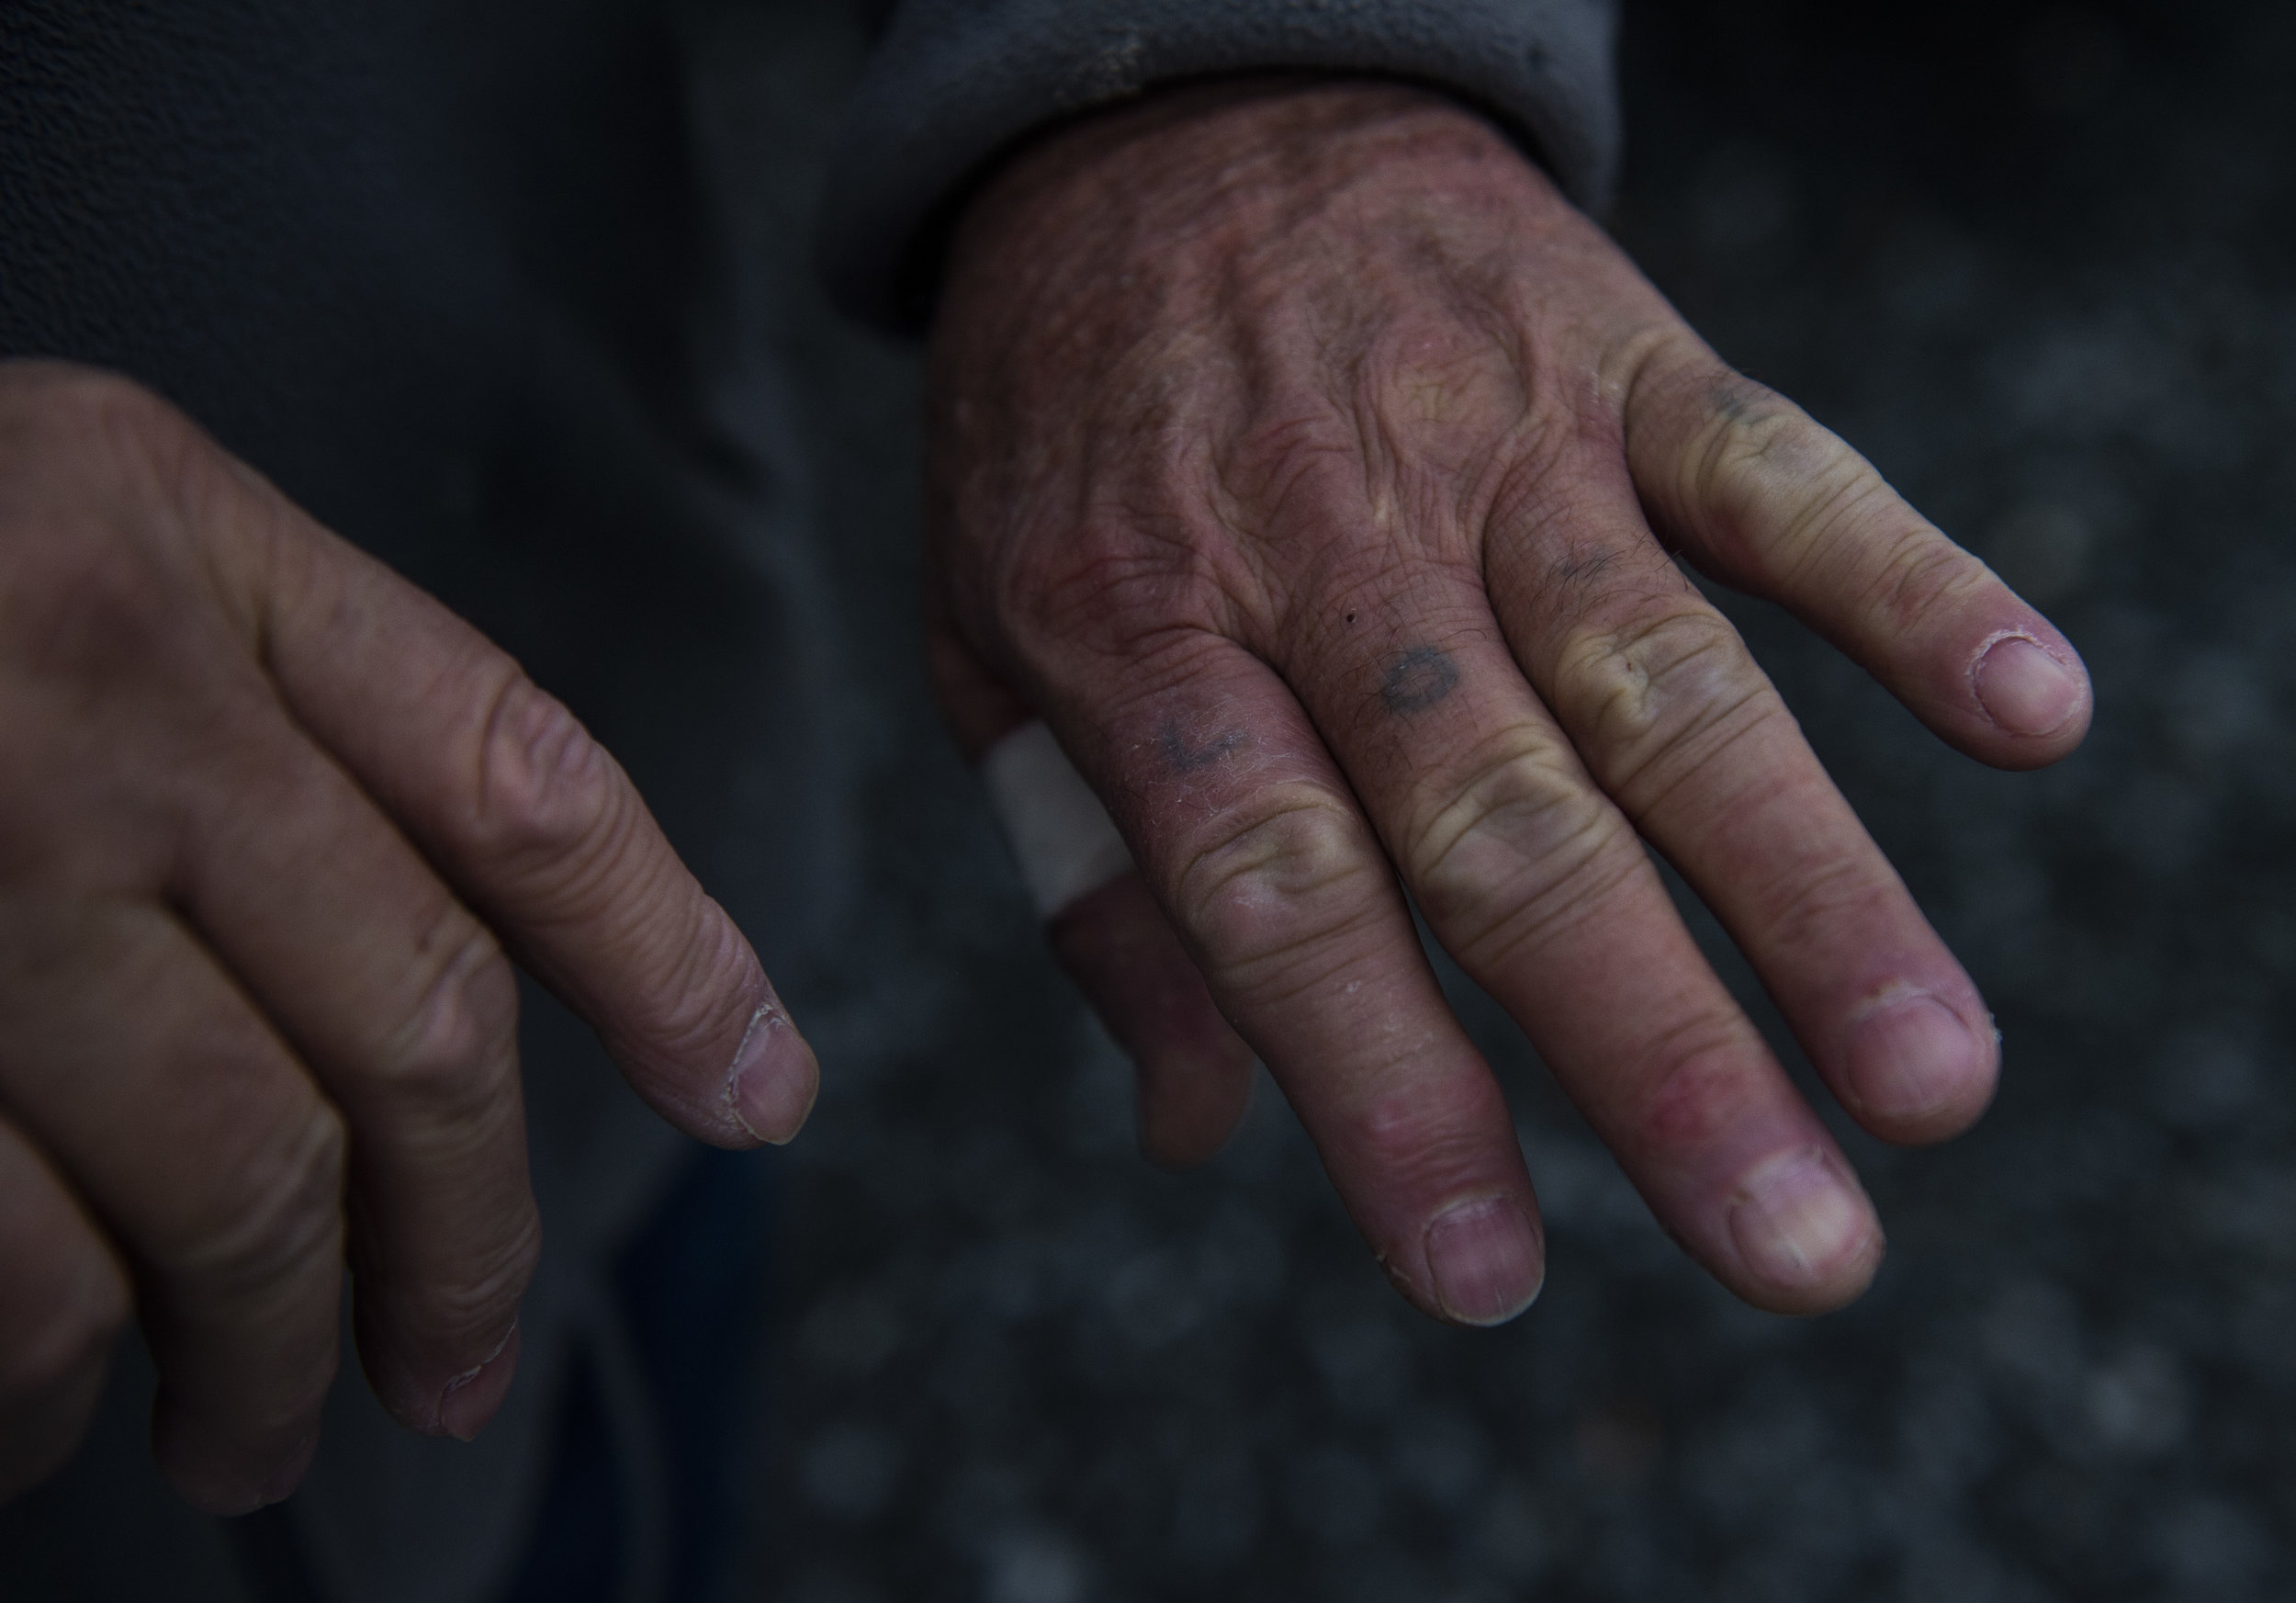 The well worked and worn hands of Charles Shortridge, a fading tattoo reading 'LOVE' stretches across his knuckles.